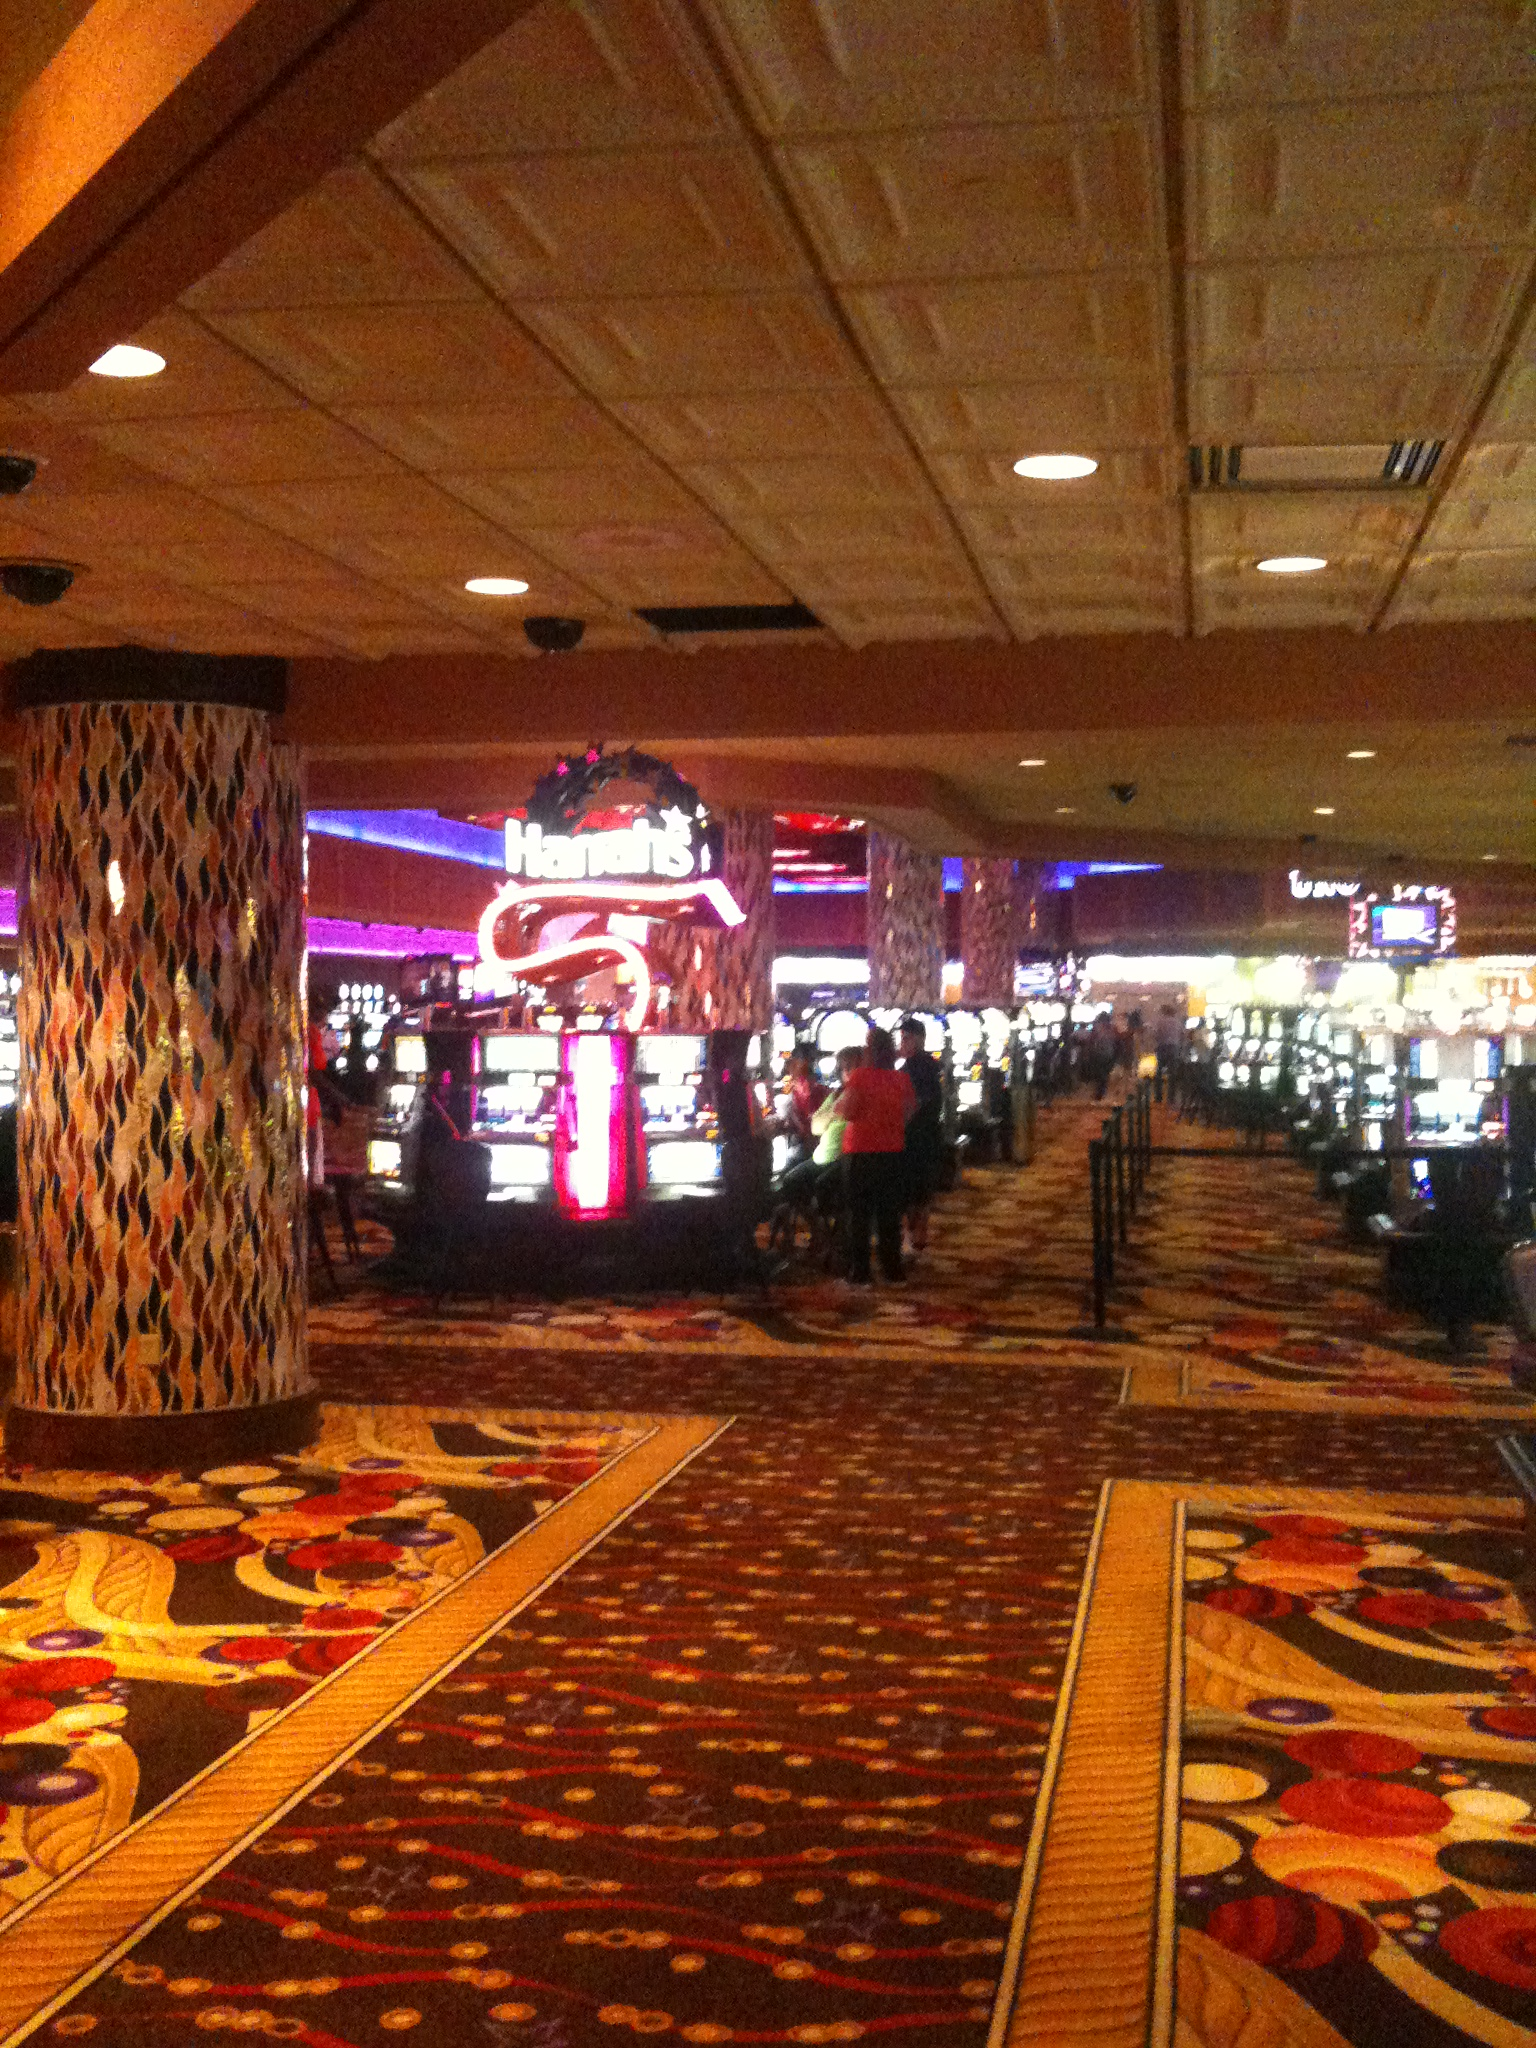 Tunica casinos harrahs